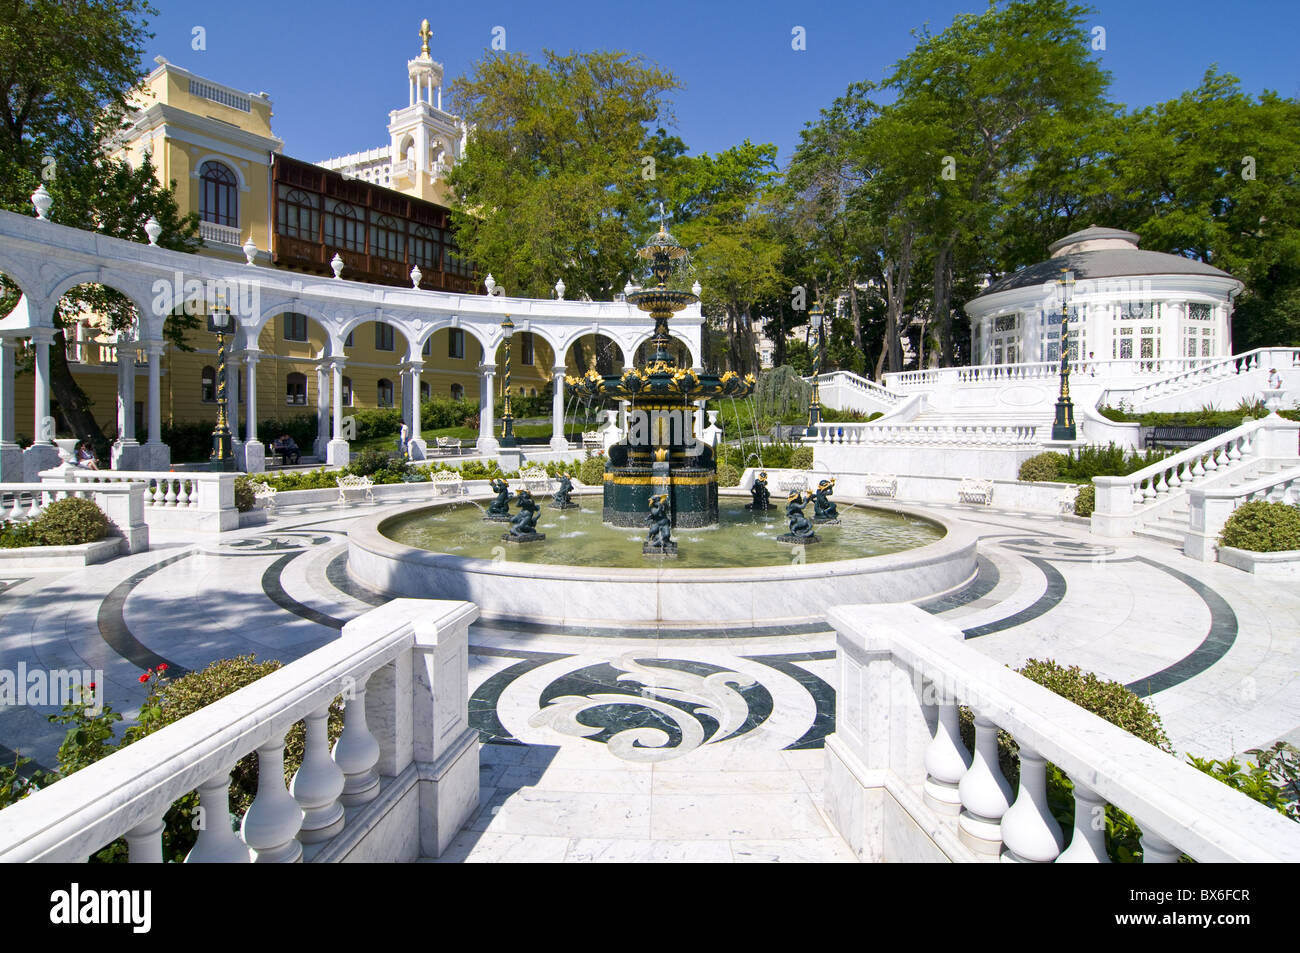 Baroque fountain square at the old city of Baku, Azerbaijan, Central Asia, Asia Stock Photo